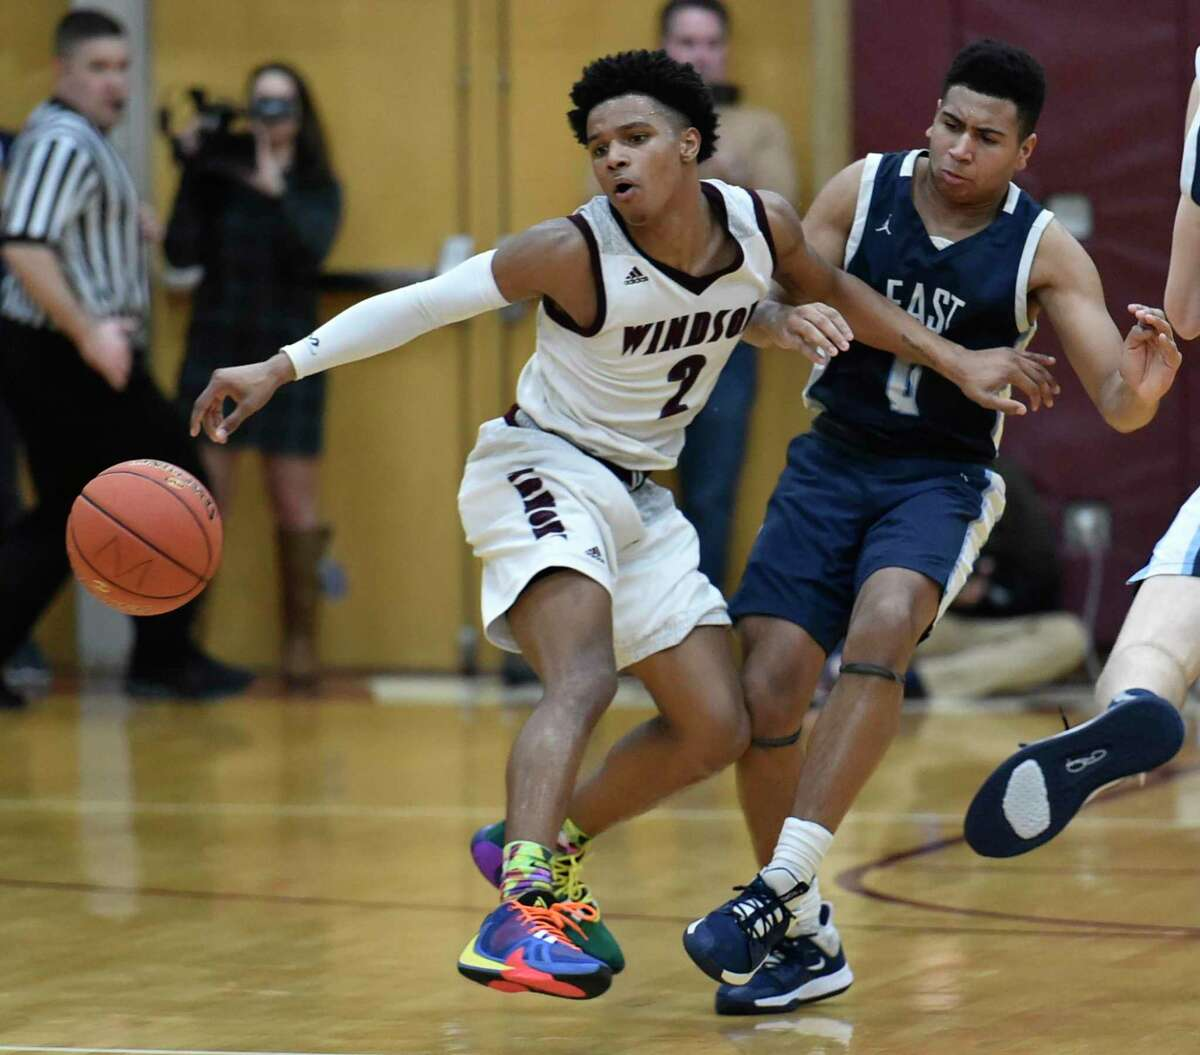 Windsor's Corey McKeithan scored 34 and 36 points in a pair of wins over Bloomfield.